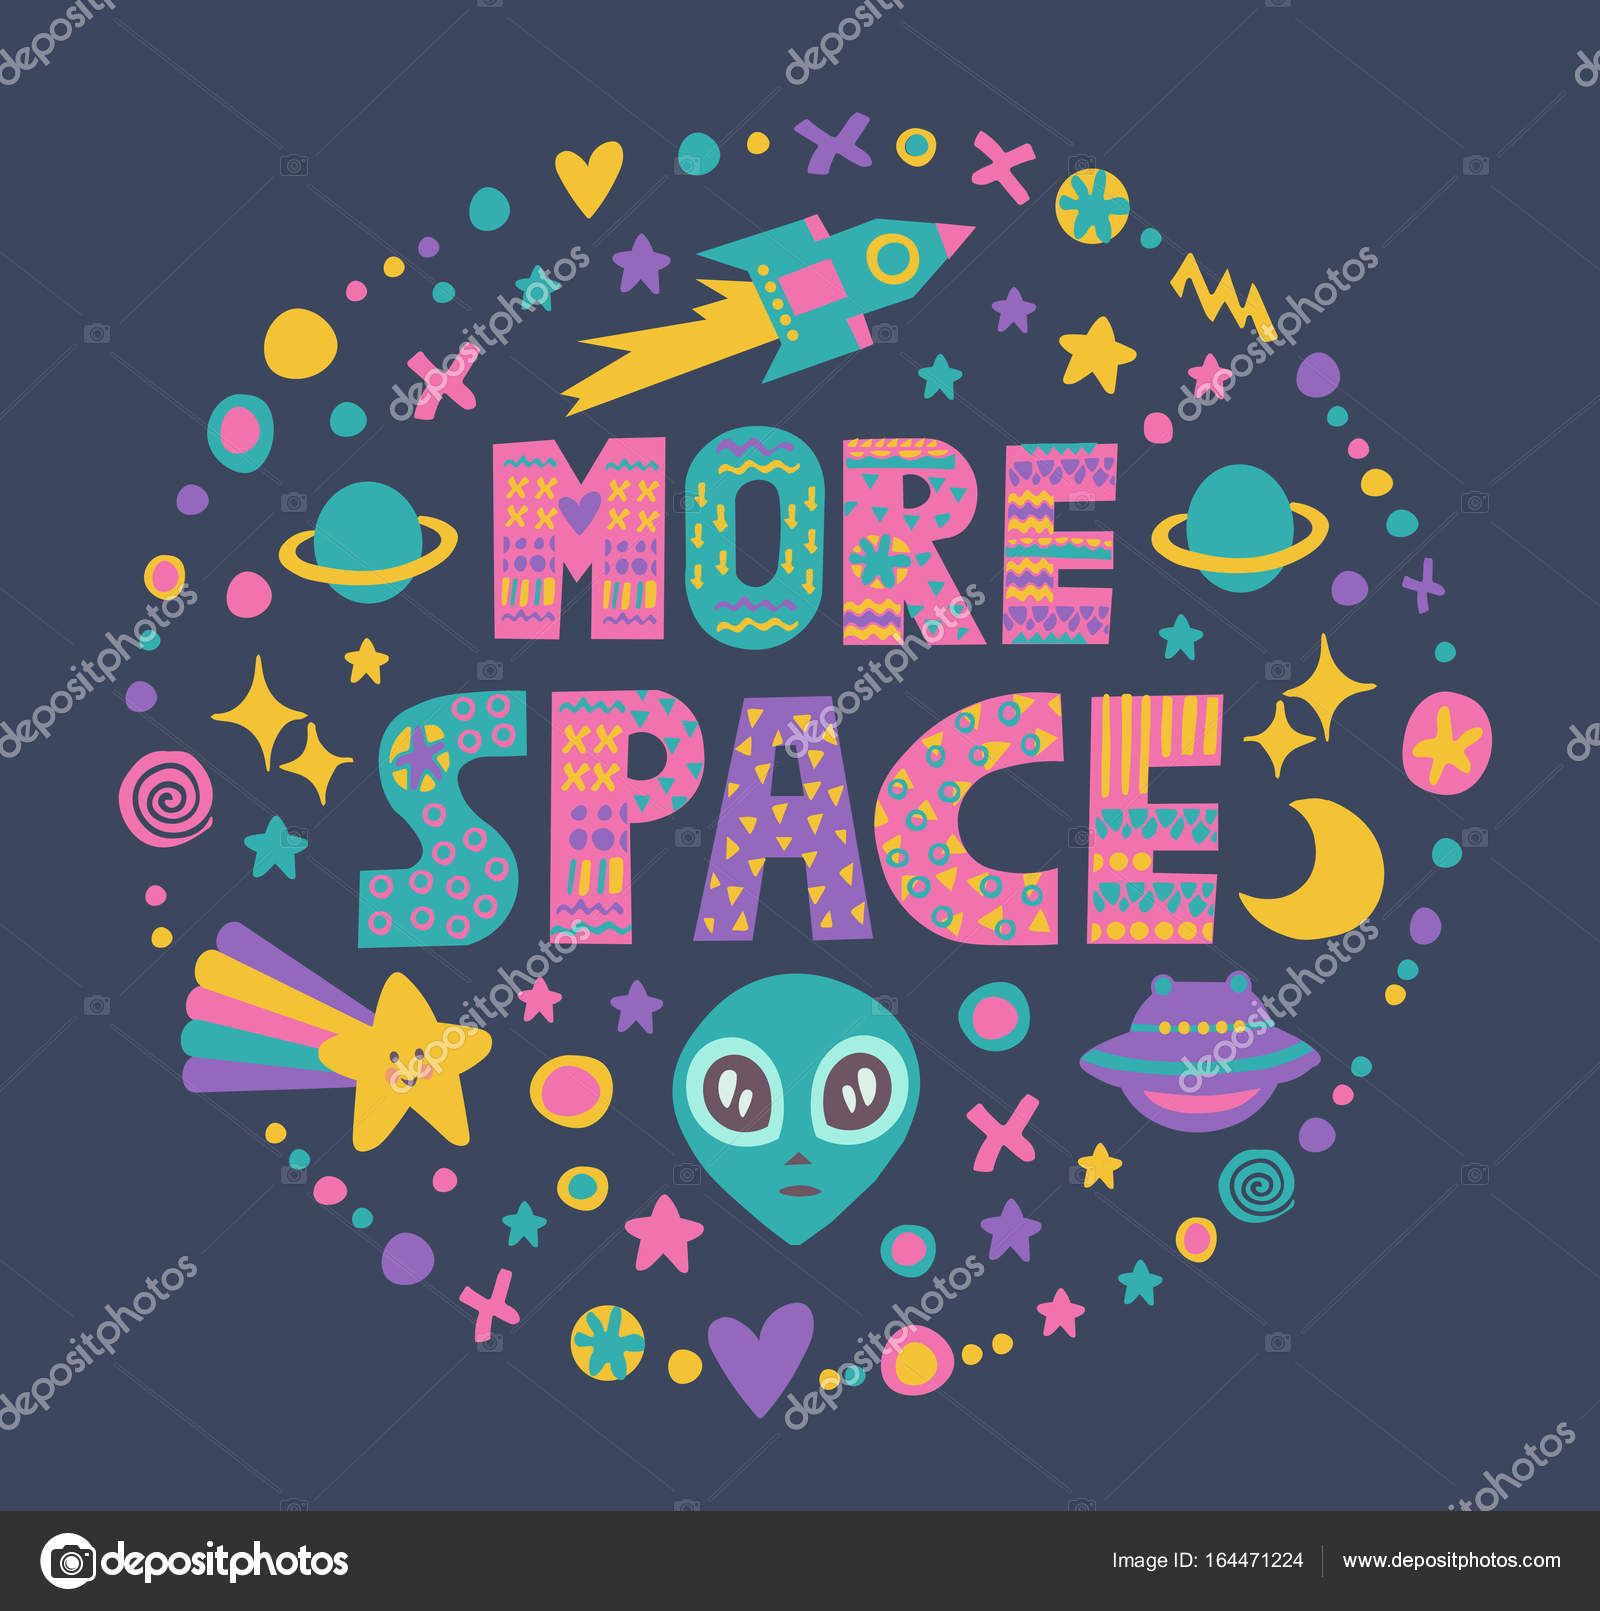 Word Art More Space With Bright Cartoon Decorative ElementsIsolated On Dark BackgroundKids Quote DesignDrawing For Prints T Shirts And Bags Or Poster